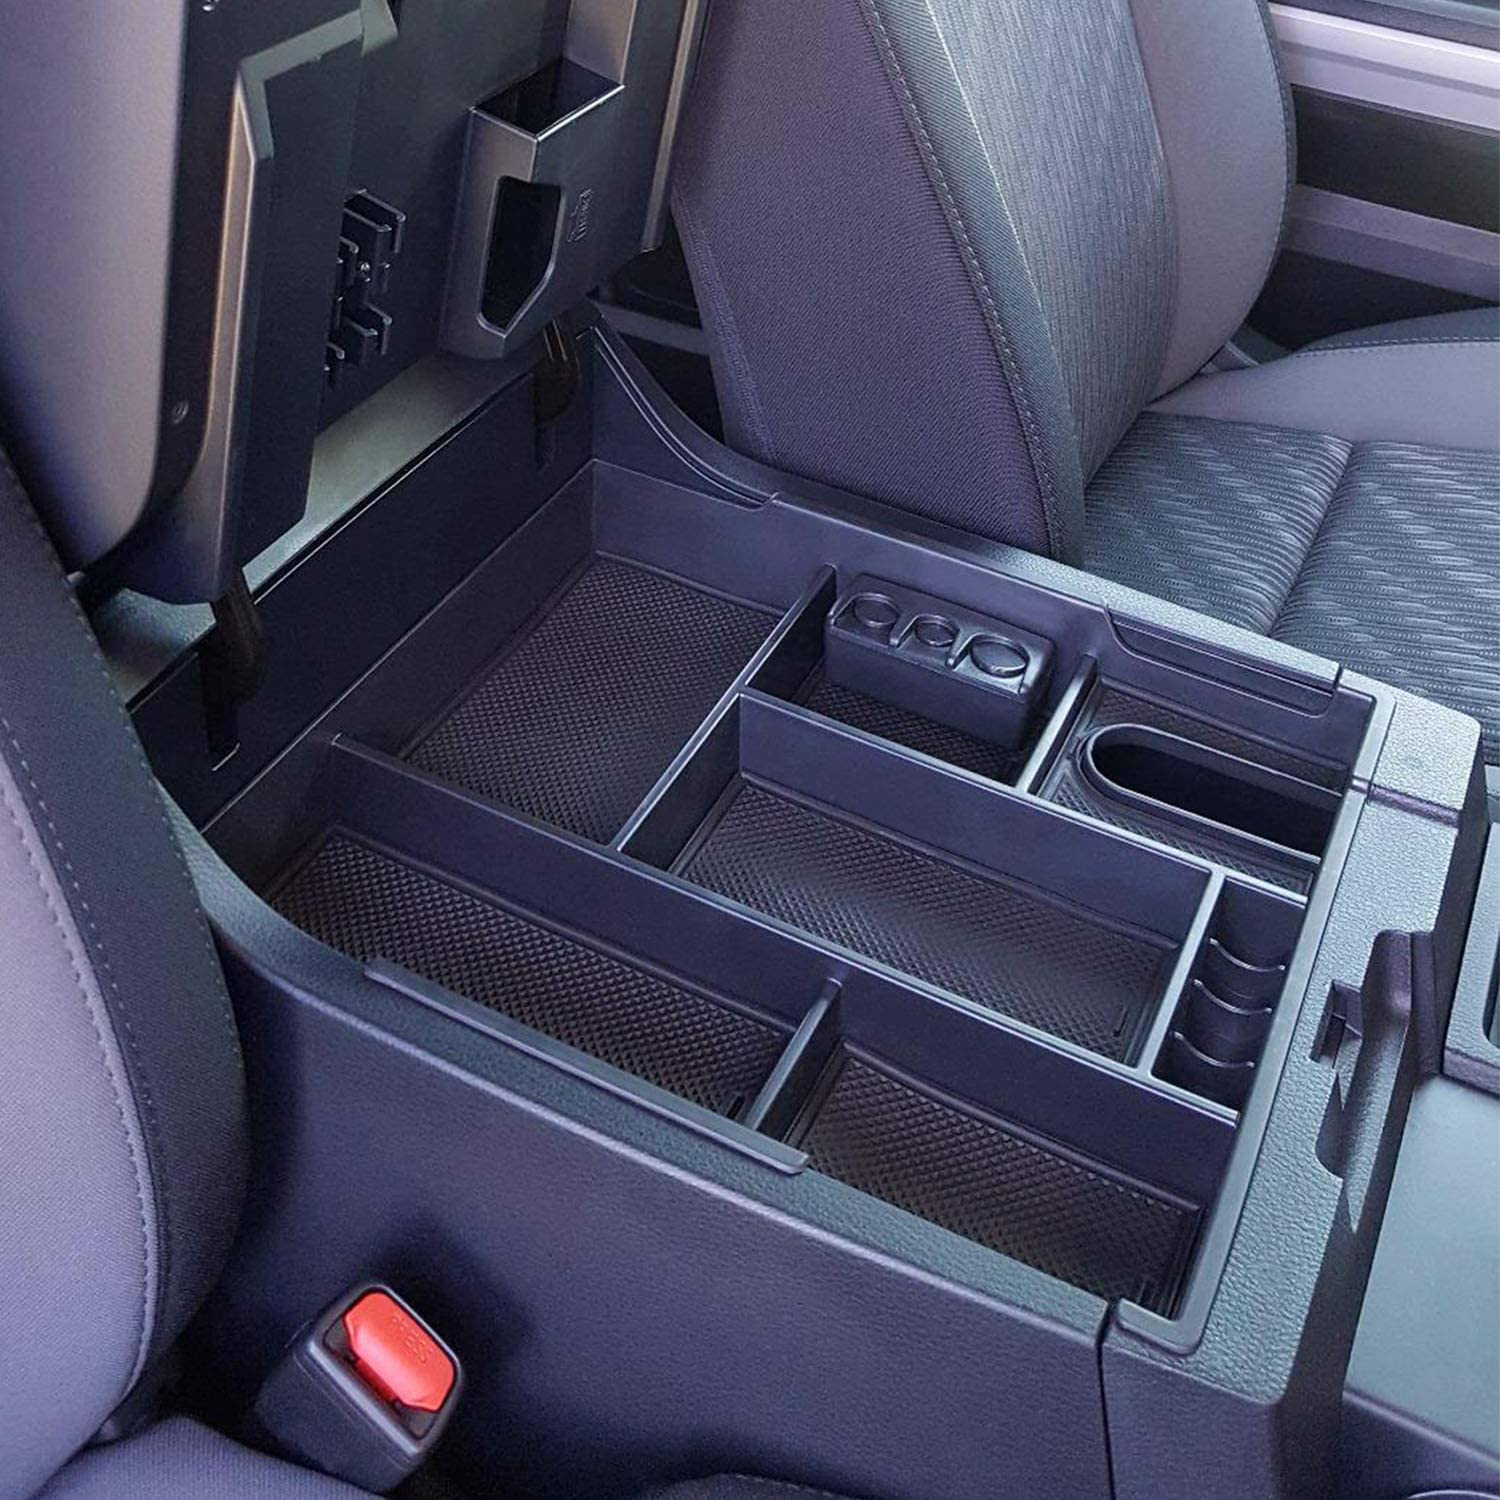 JKCOVER Center Console Organizer Tray Compatible with Toyota Tundra 2014 2015 2016 2017 2018 2019 2020 Tundra Accessories,Insert ABS Black Materials Armrest Box Secondary Storage